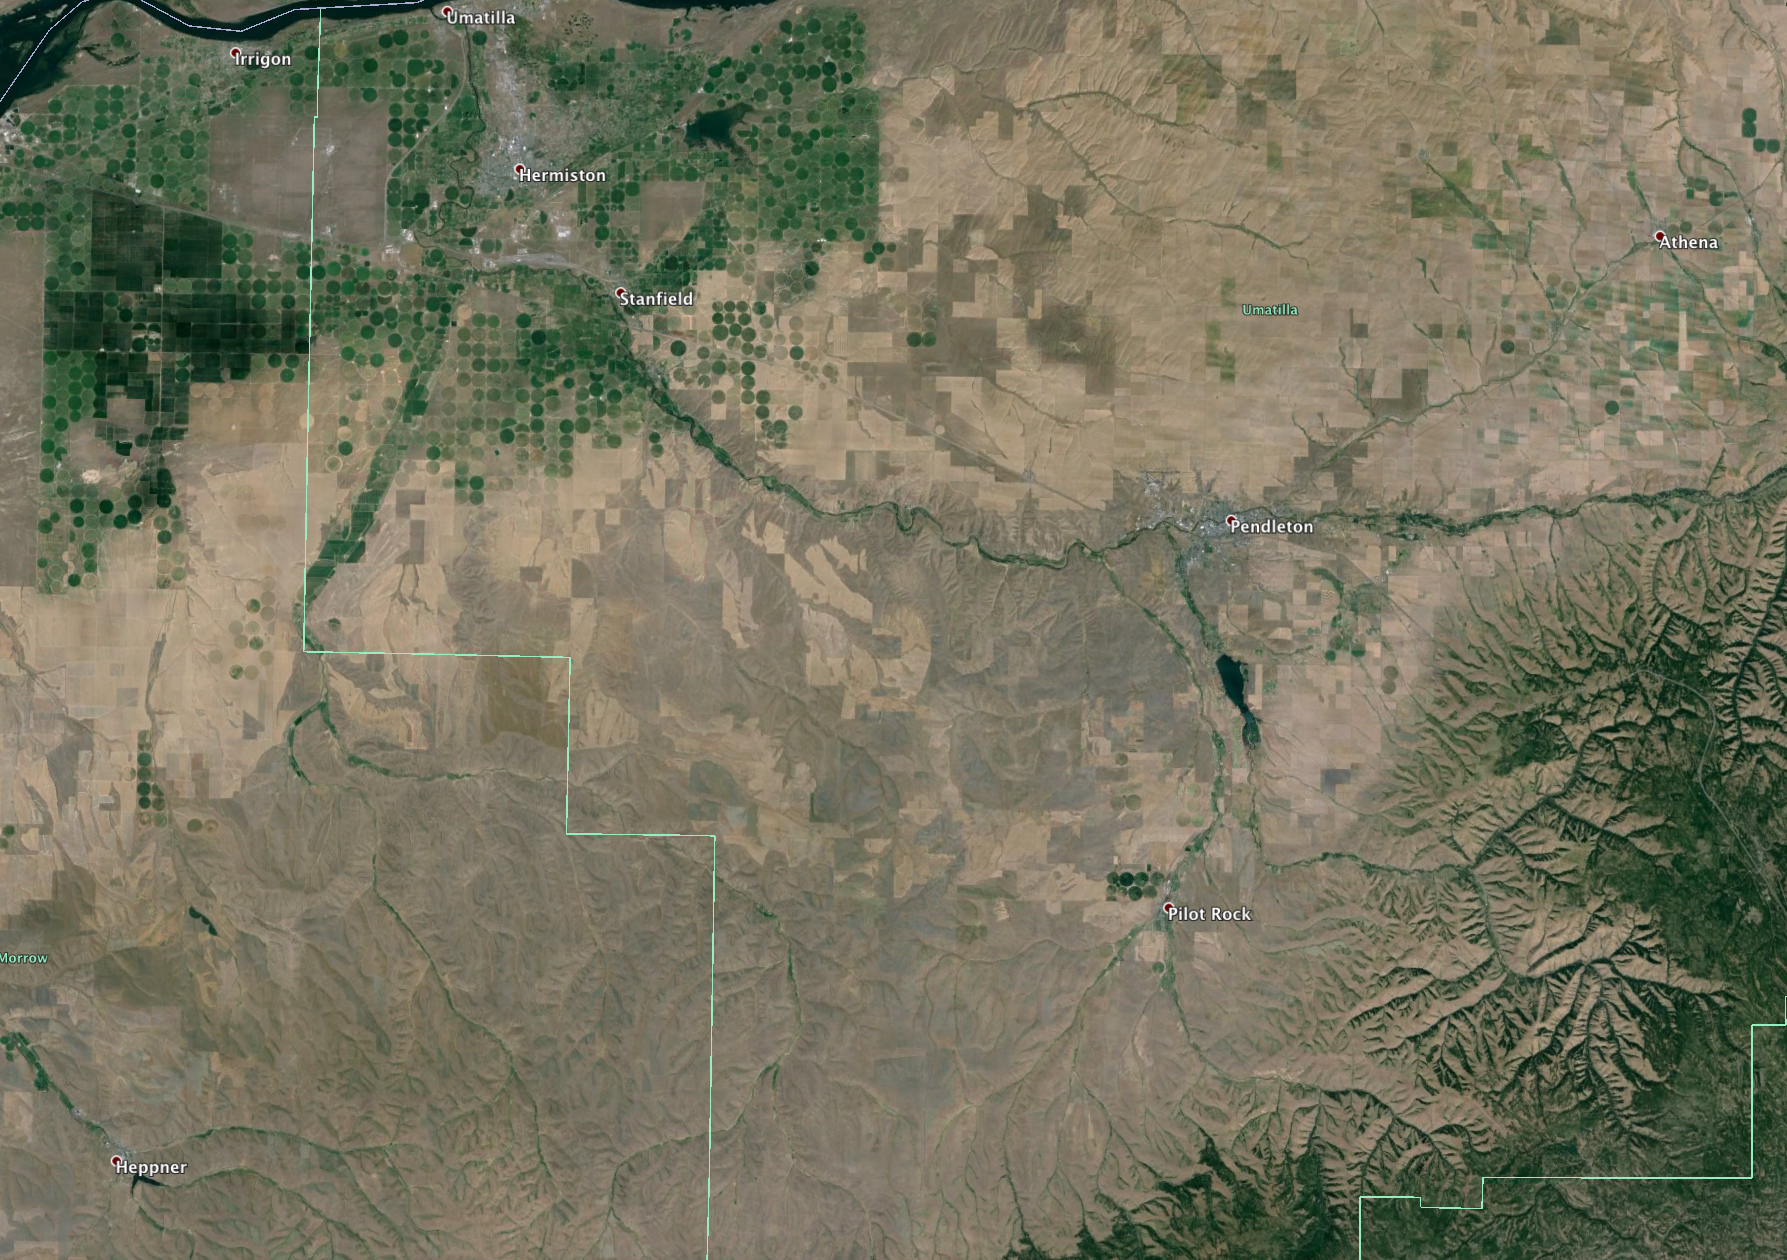 Overview of Eastern Oregon Grain growing areas.